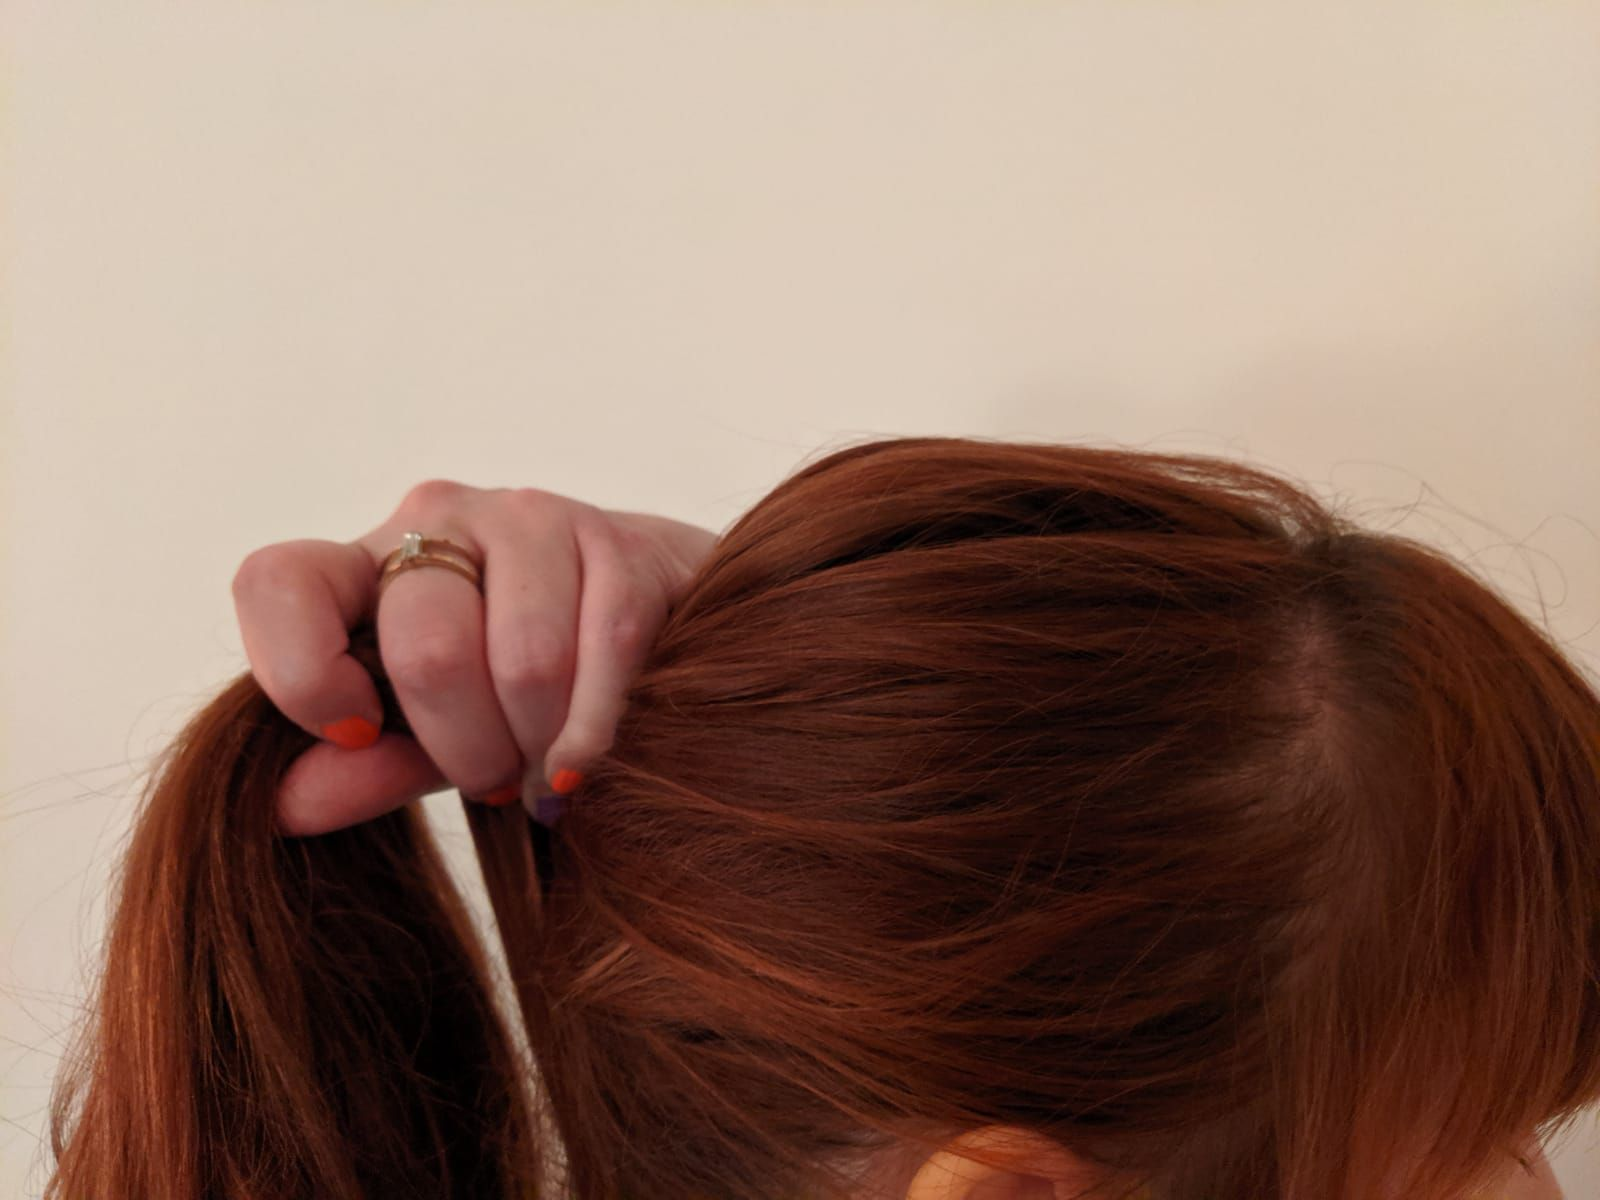 Red-haired woman making a ponytail